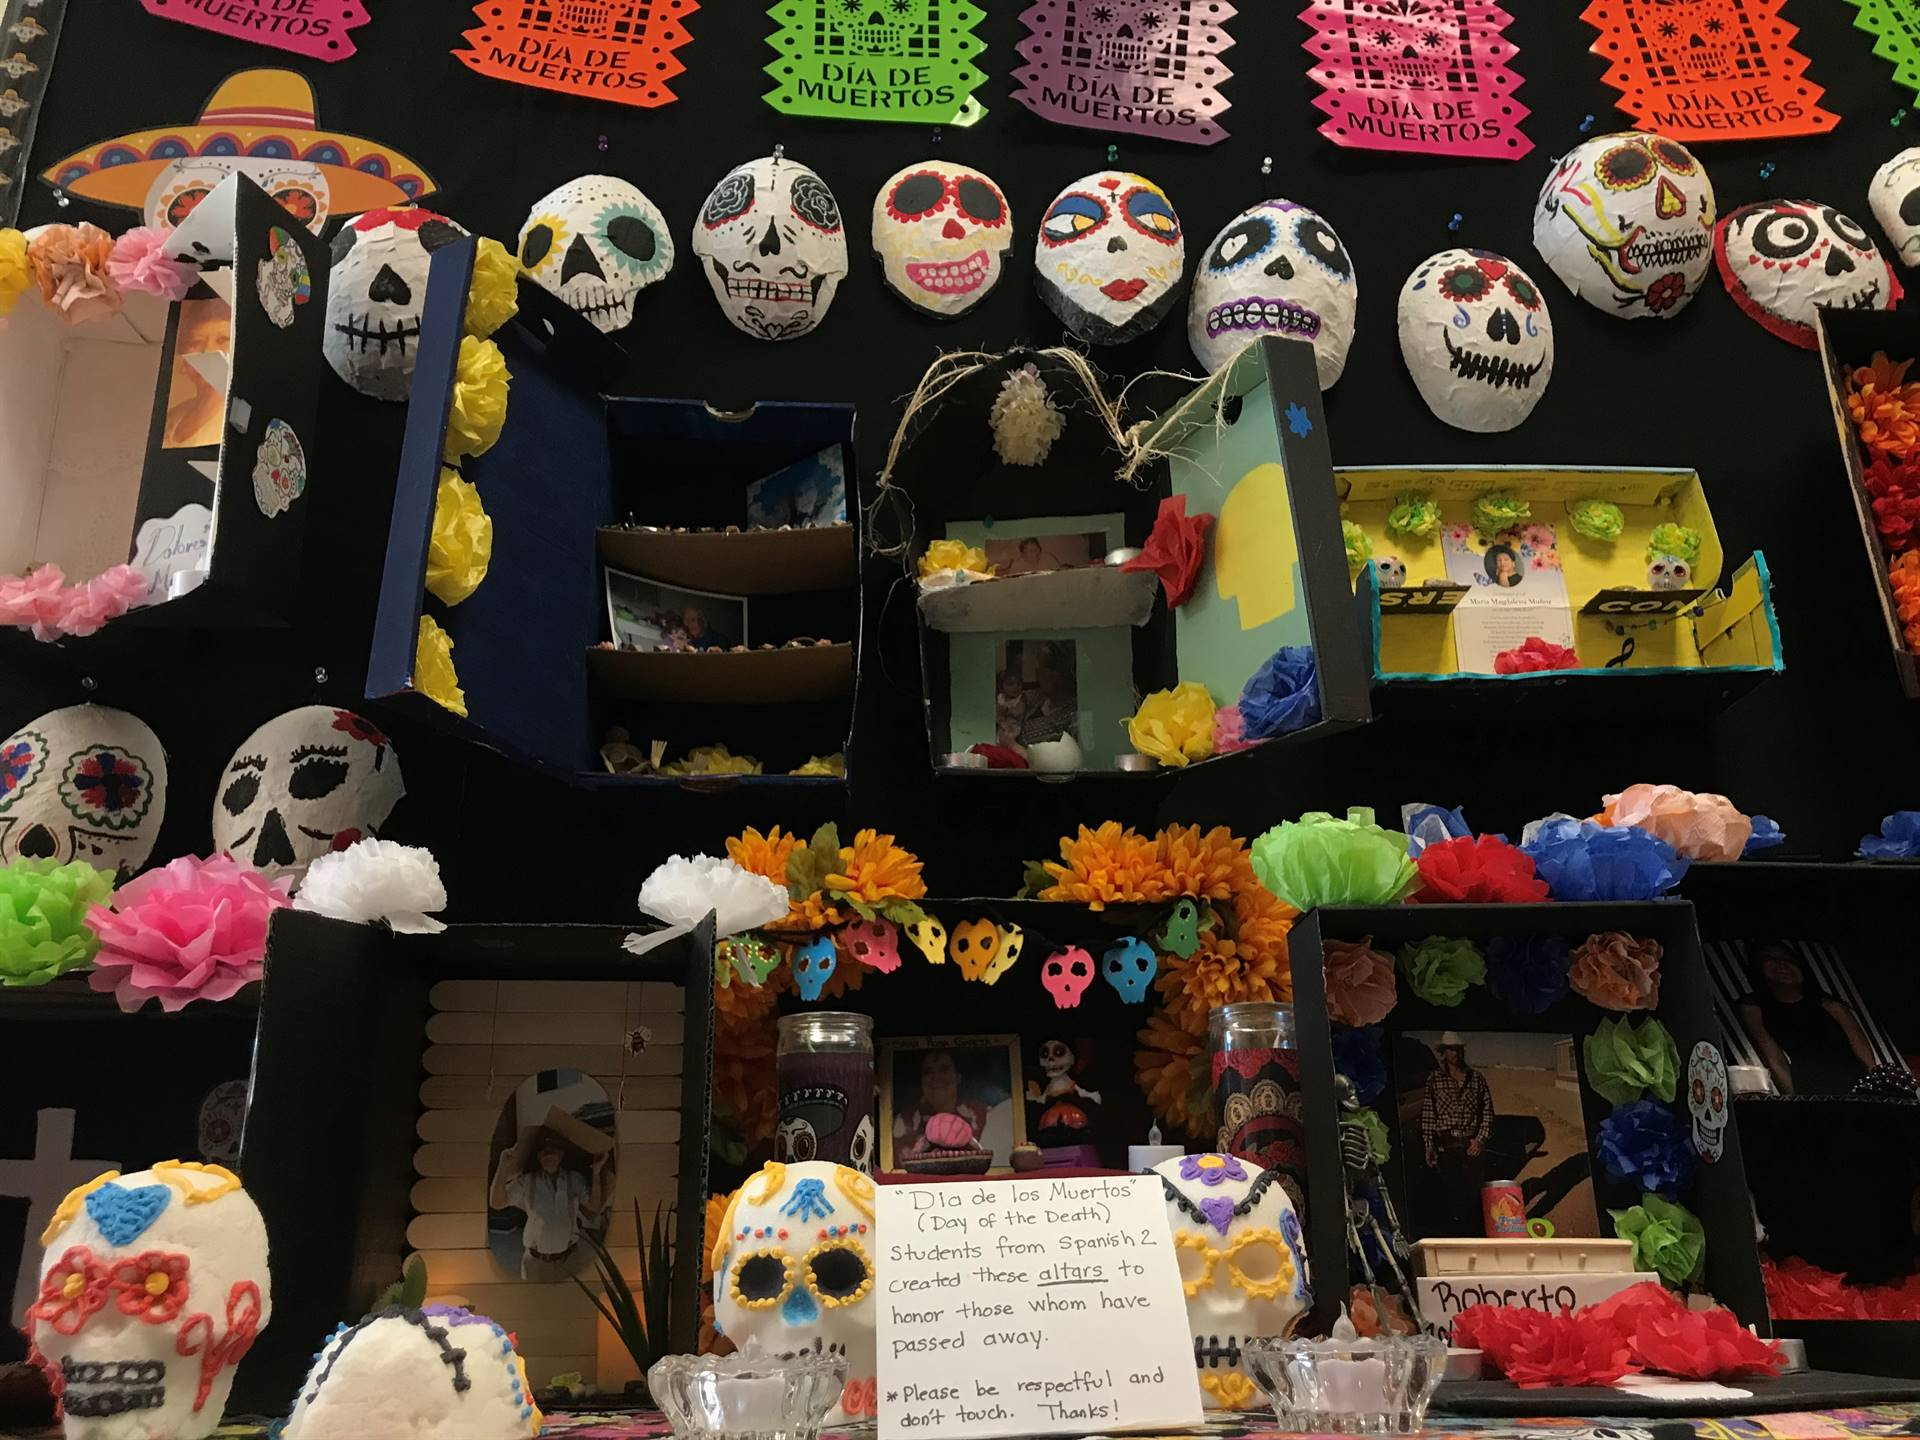 Spanish Classes Day Of Dead 20191031 (2)